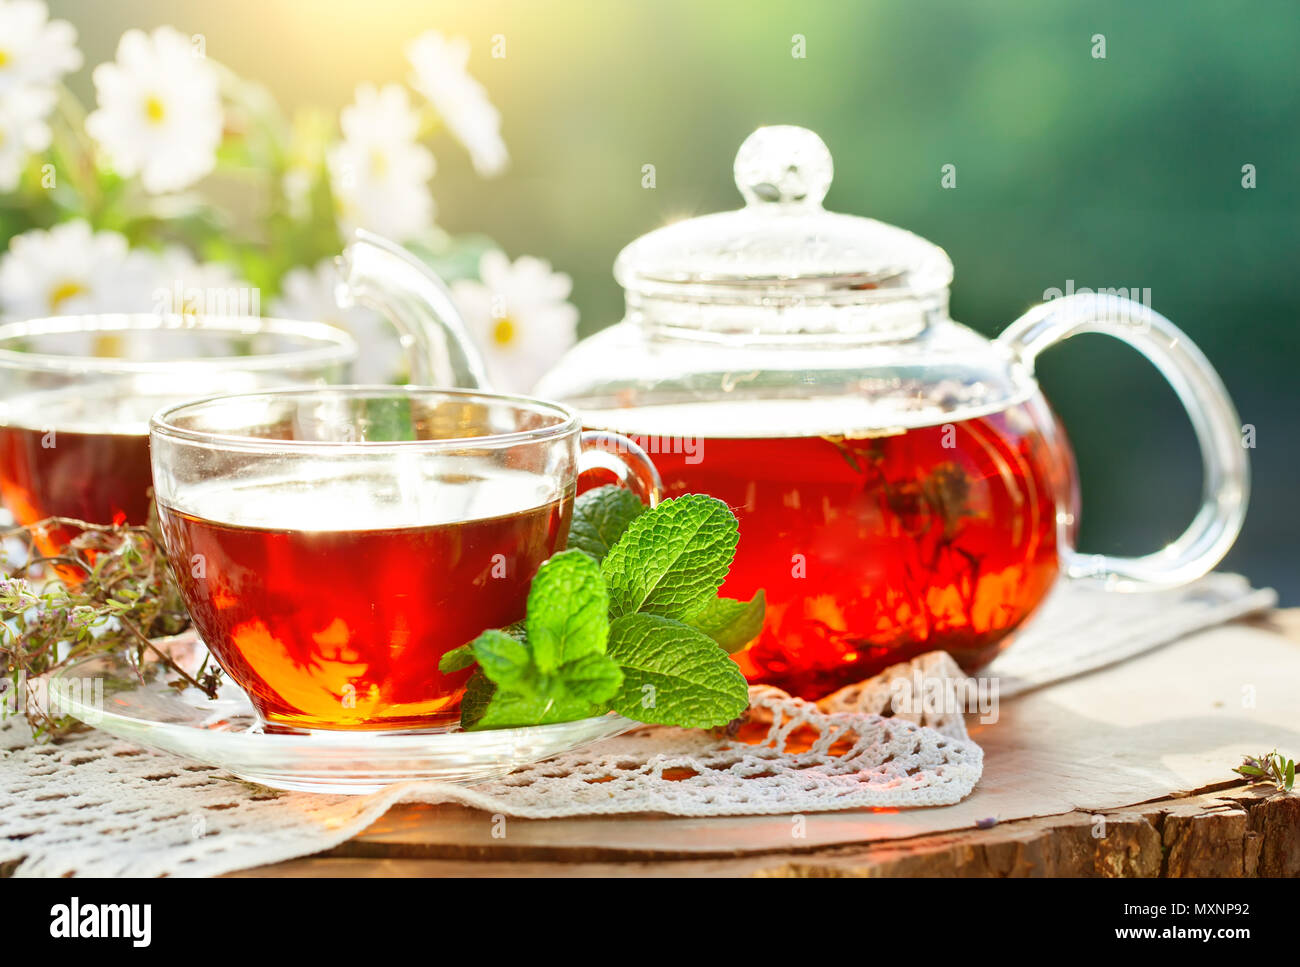 Cup with hot tea with mint and a thyme on a wooden table in a summer garden. Stock Photo